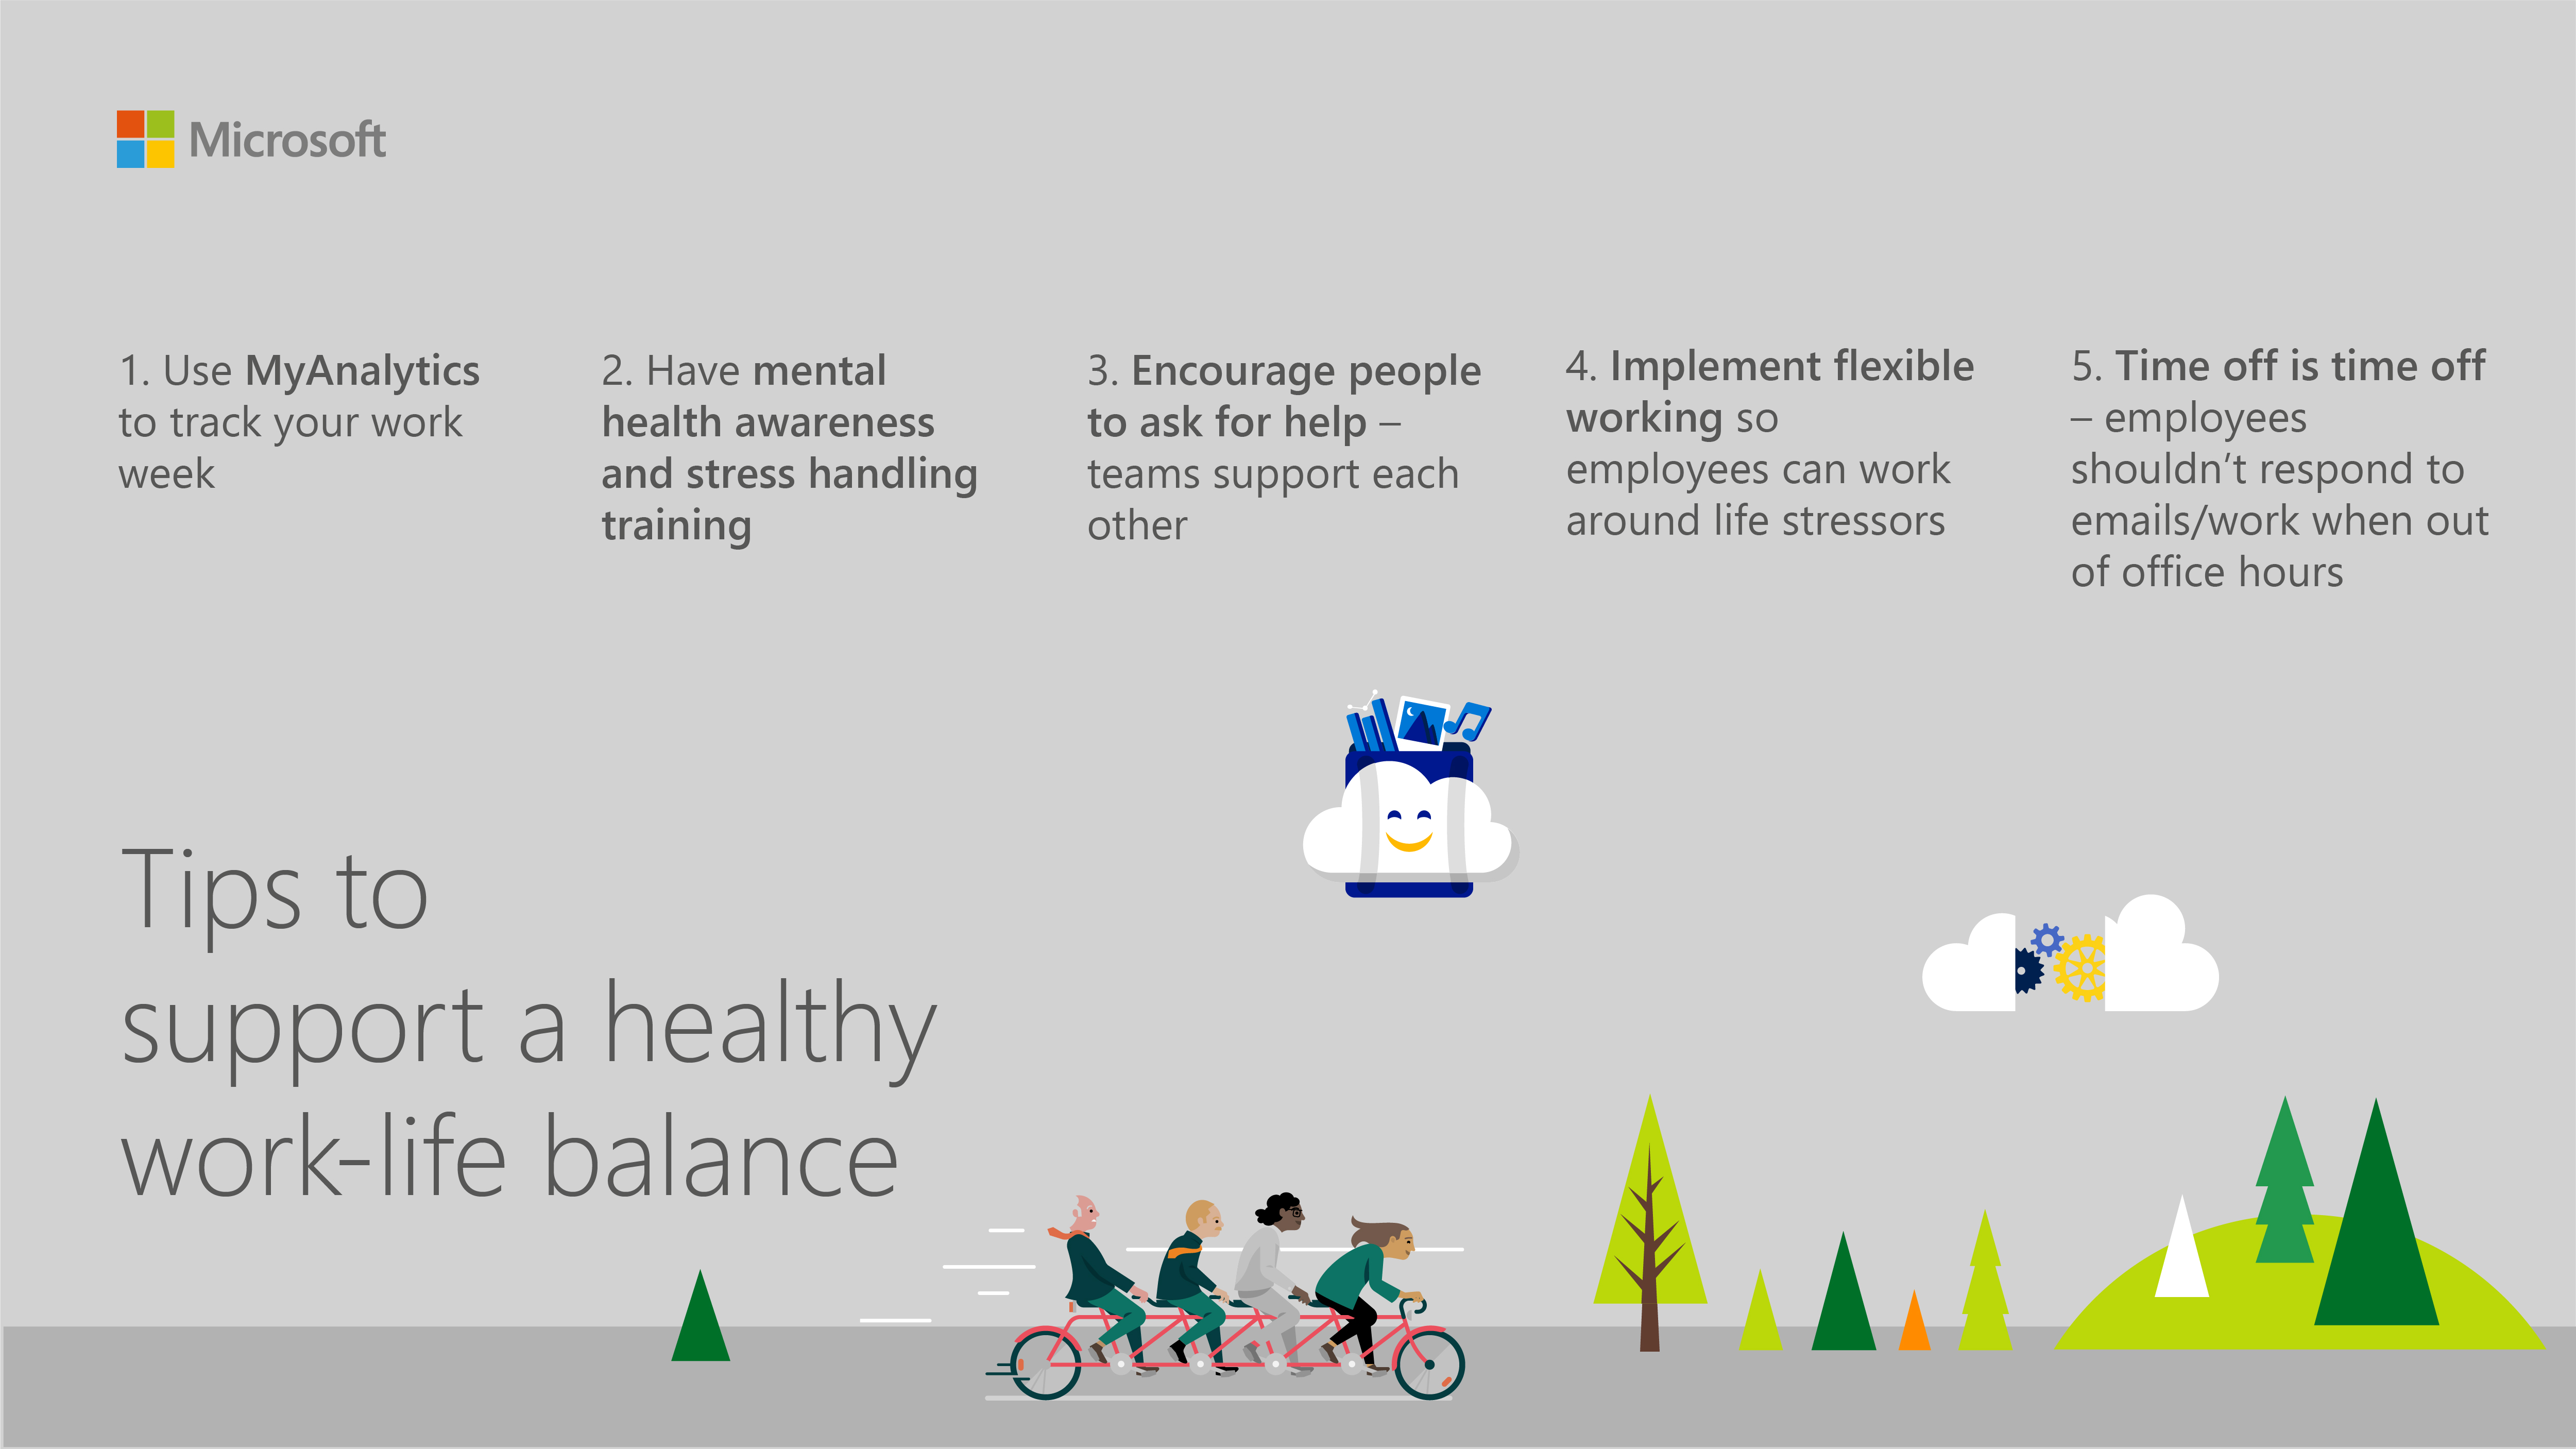 Tips to encourage a healthy work-life balance